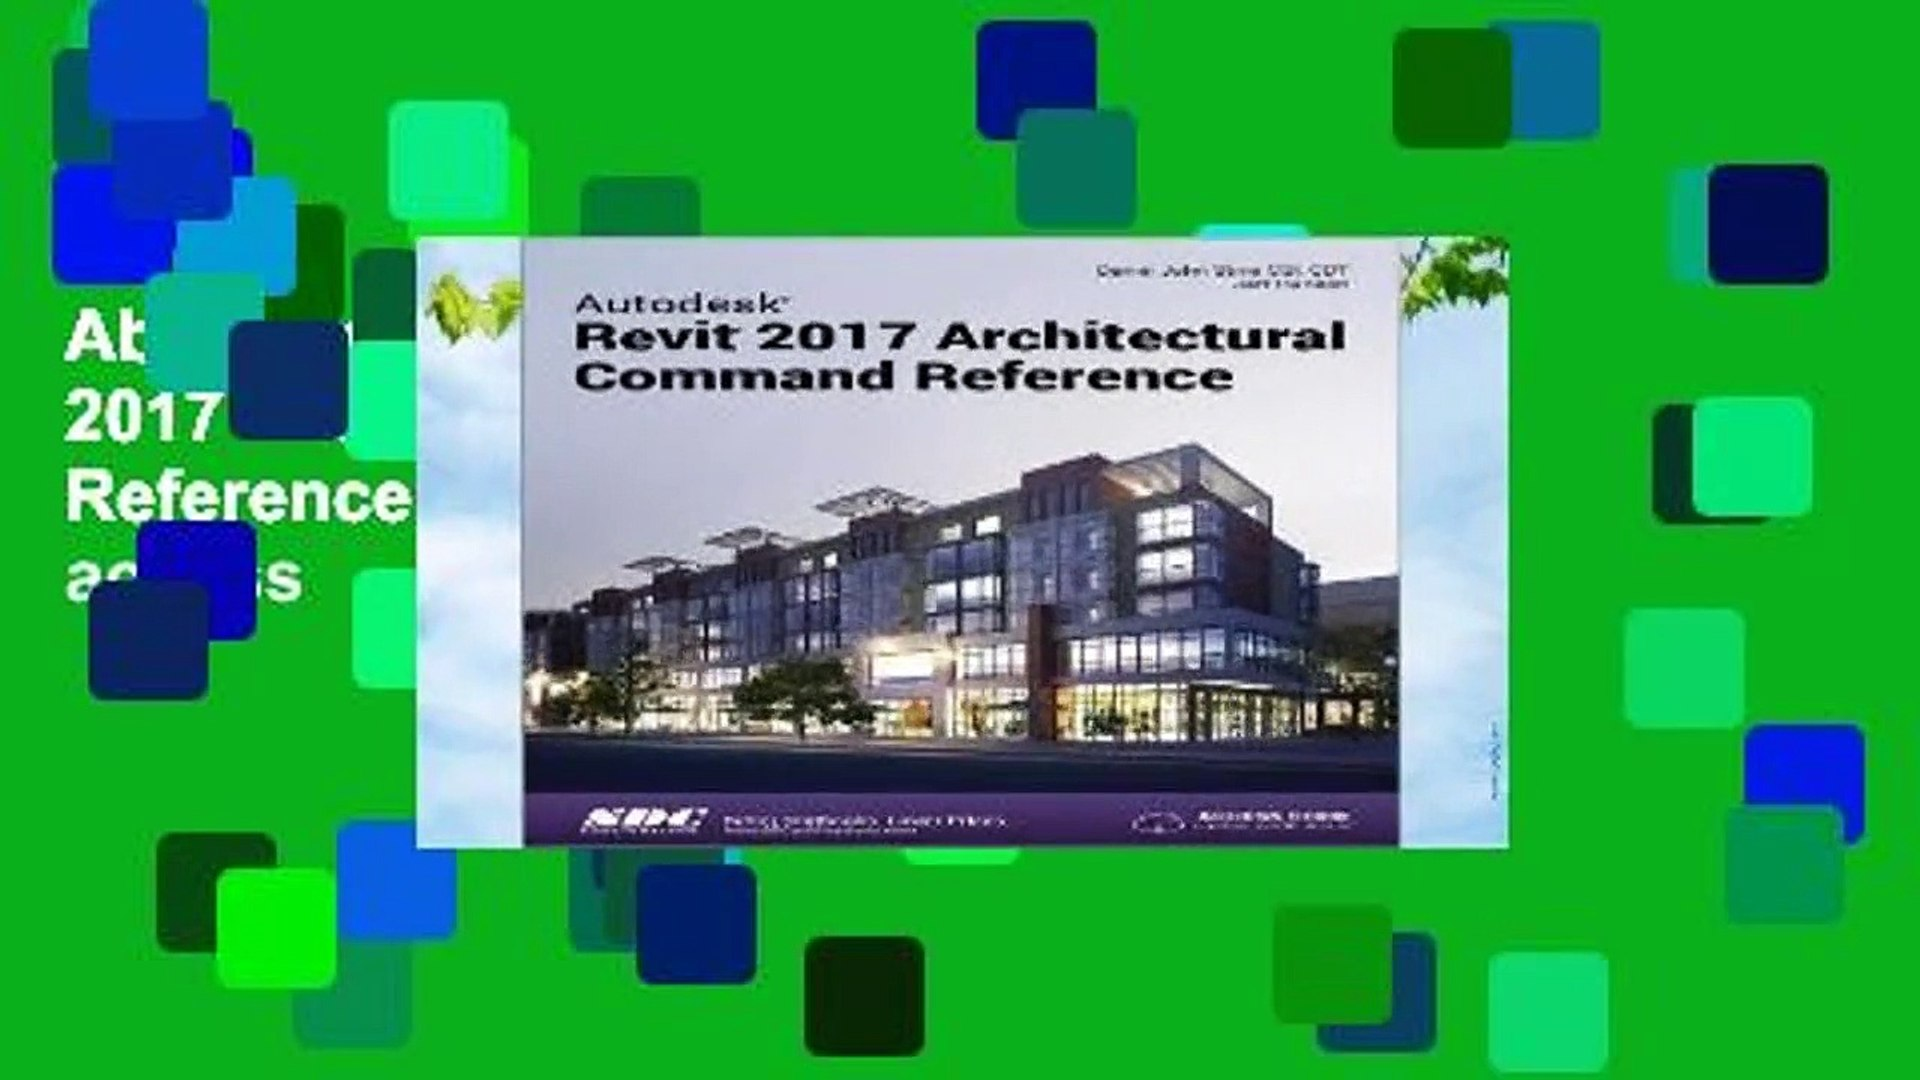 About For Books Autodesk Revit 2017 Architectural Command